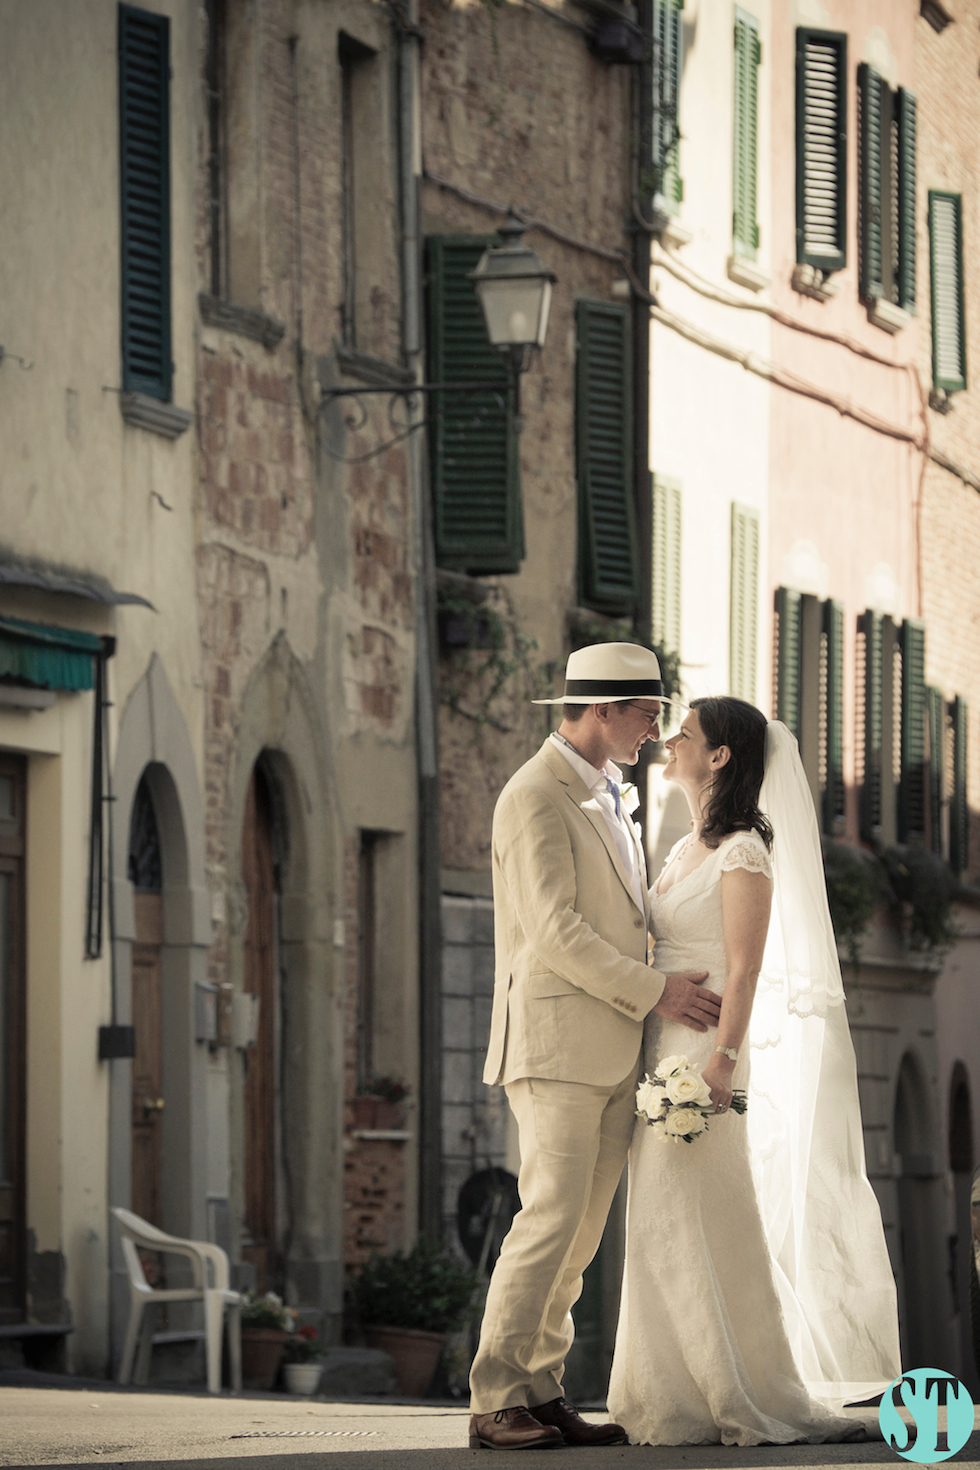 09Lavender inspired Wedding in Tuscany